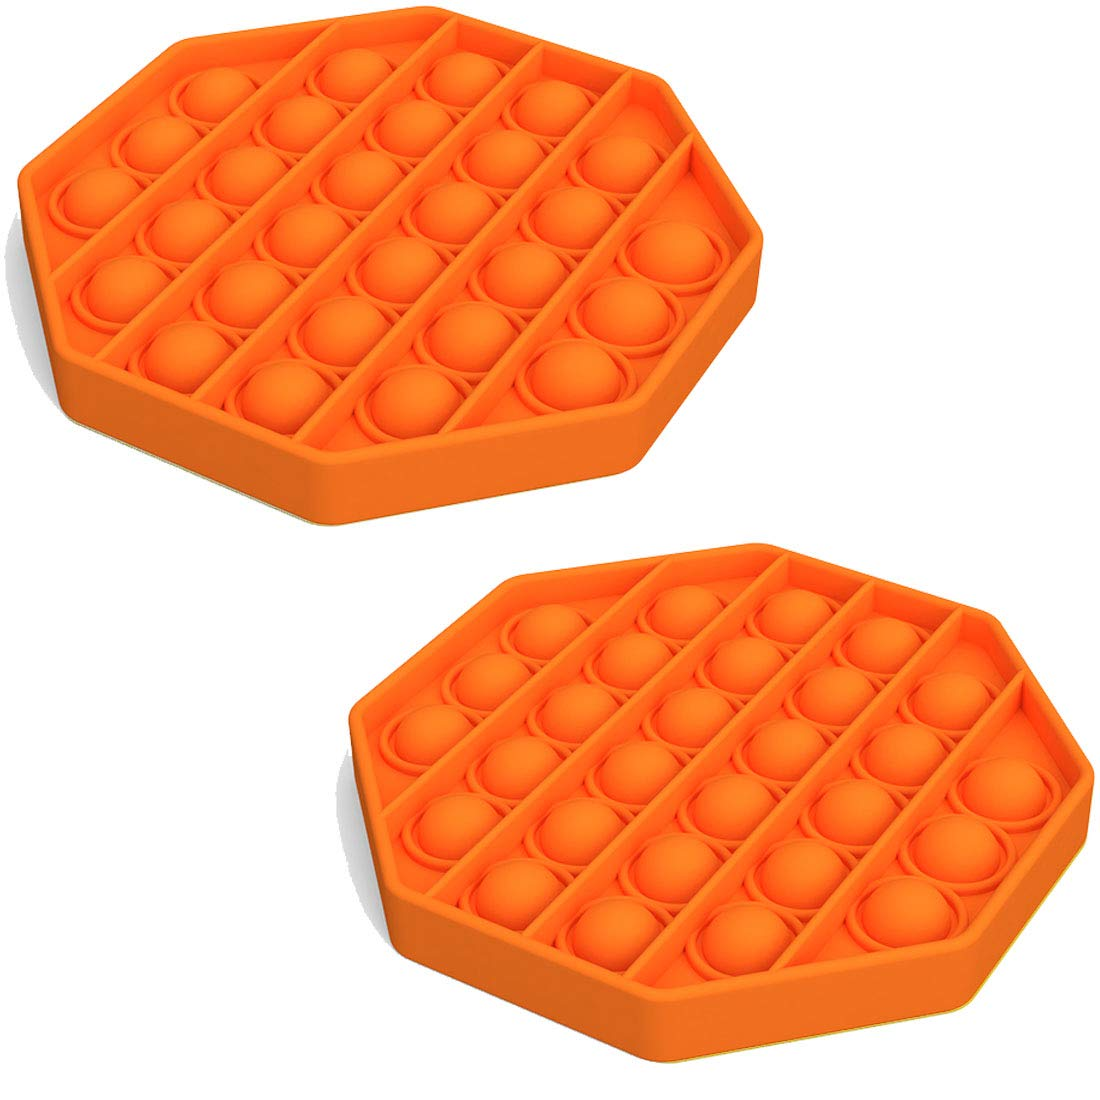 2 Pack Push Pop Pop Bubble Fidget Toy - Stress Reliever Extrusion Push Bubble Press Sensory Toy for Autism, OCD, Special Needs, Anxiety Help Restore Emotions (Octagon Orange)